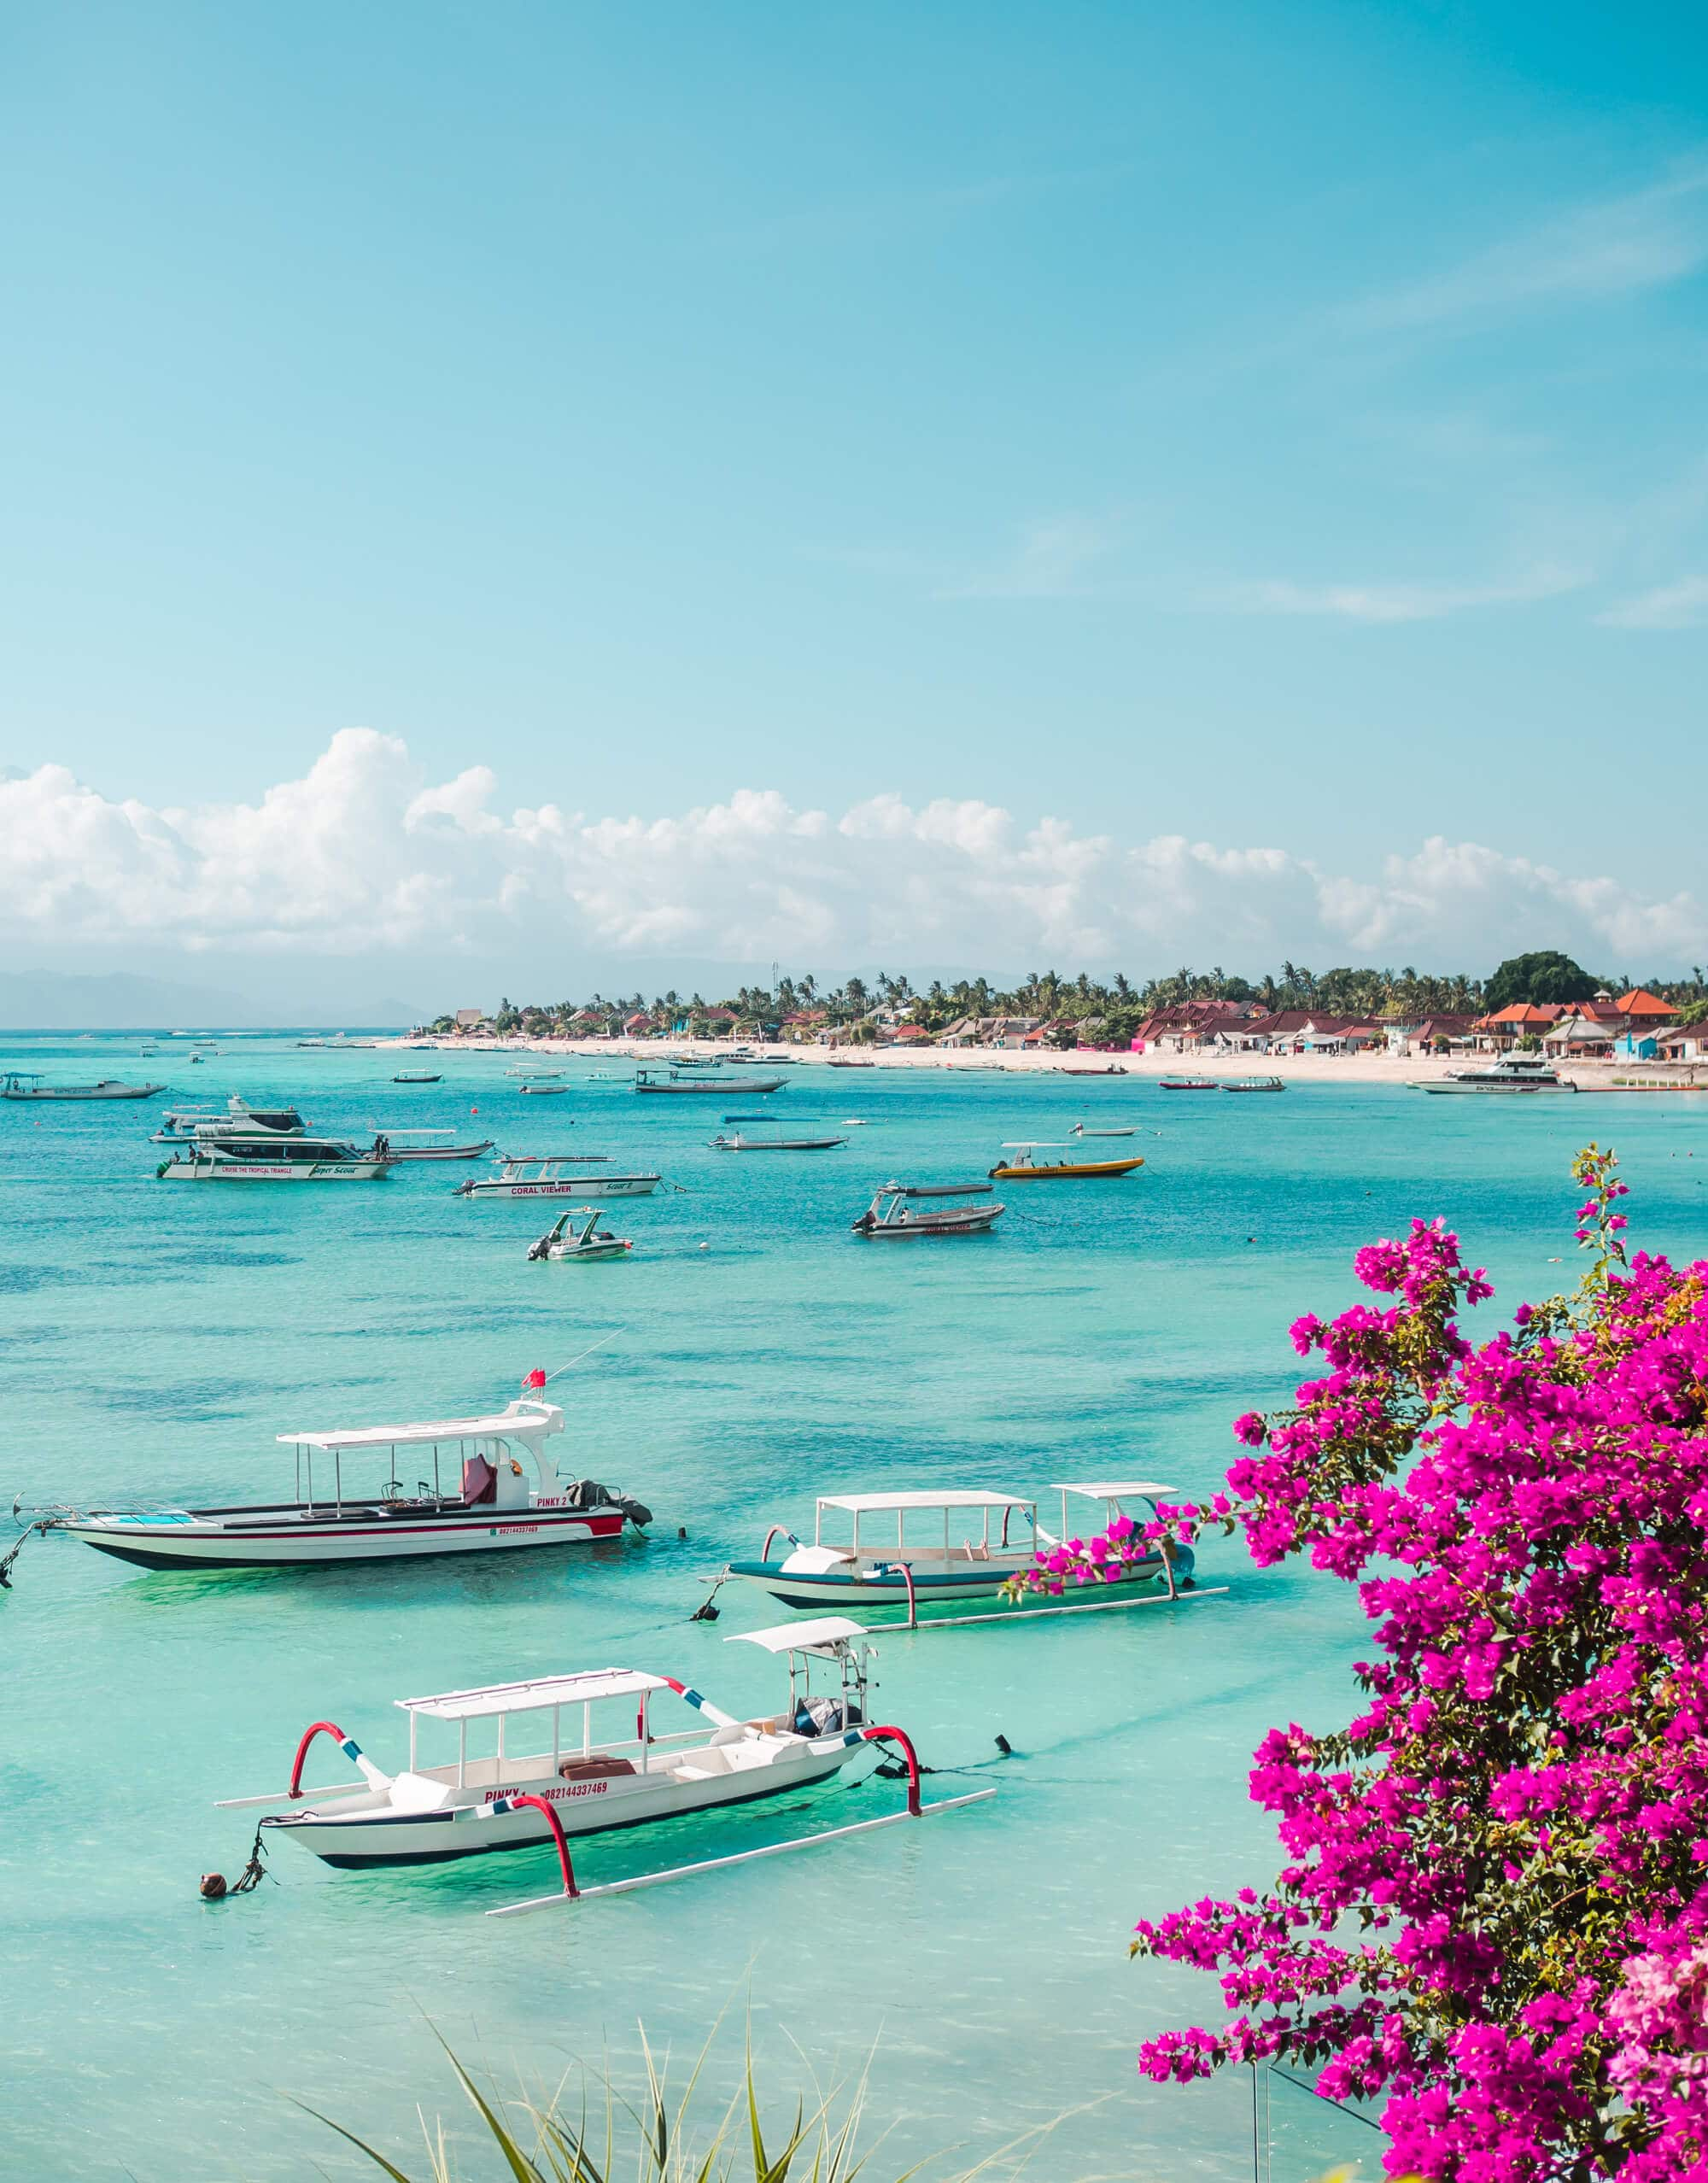 The ultimate 2 week Bali itinerary - Nusa Lembongan boardwalk view